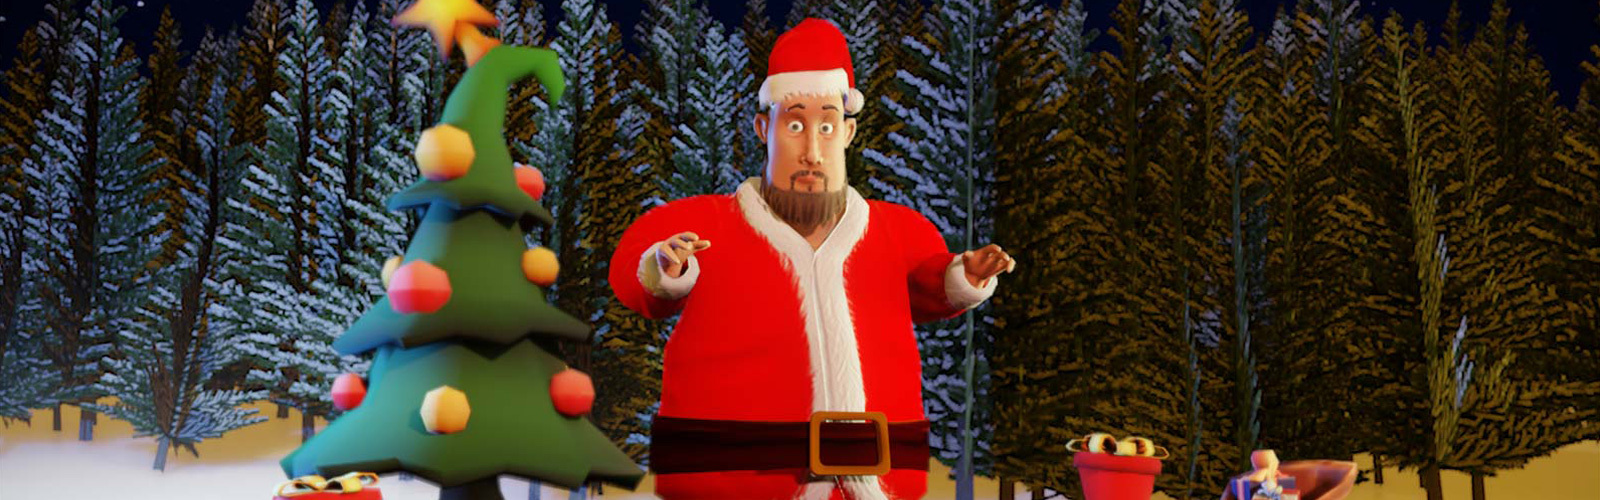 Eden's director Craig 3D modelled in a Father Christmas outfit next to a 3D Christmas tree in a 3D world